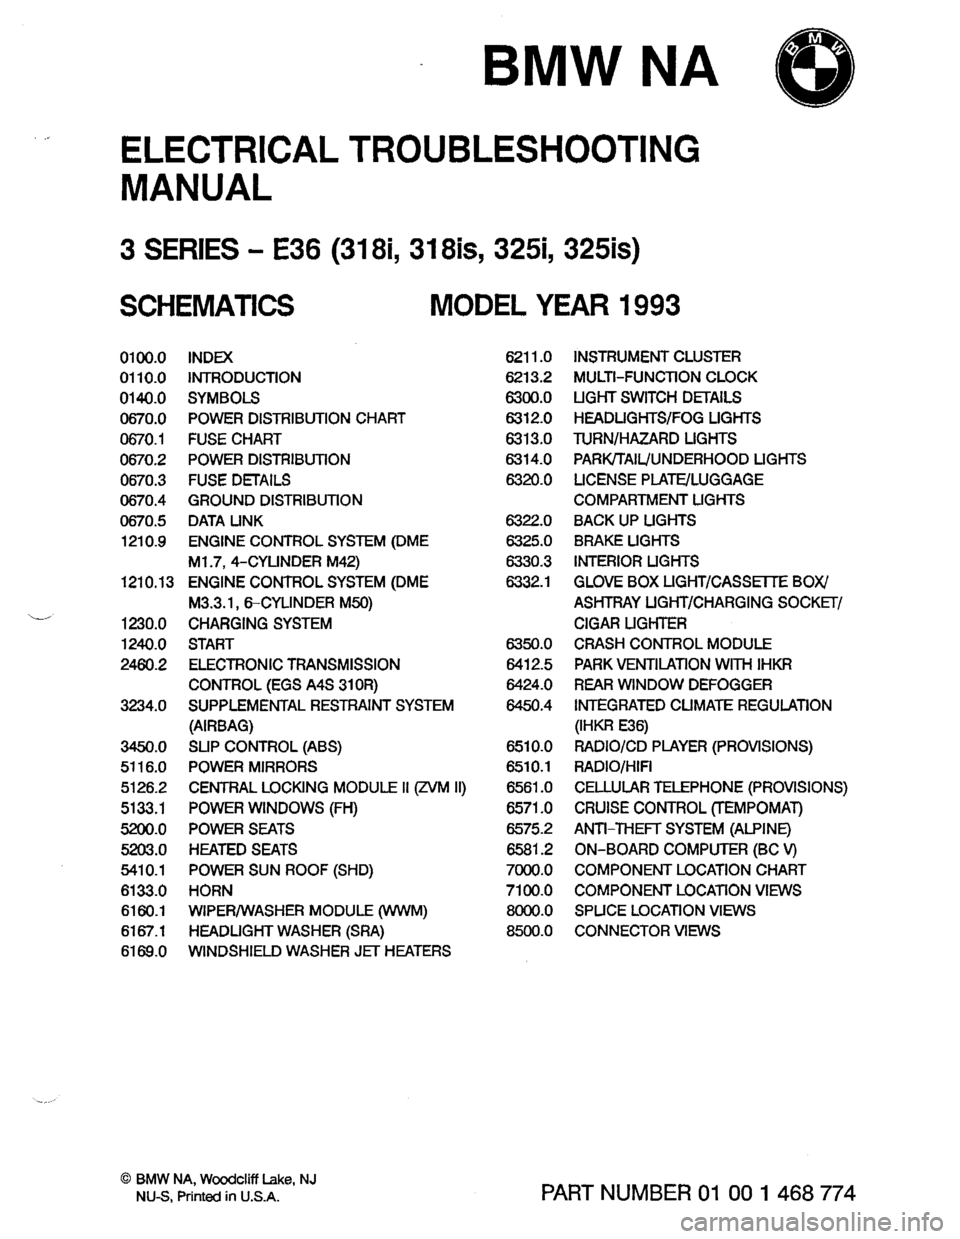 BMW 325is 1993 E36 Electrical Troubleshooting Manual, Page 2